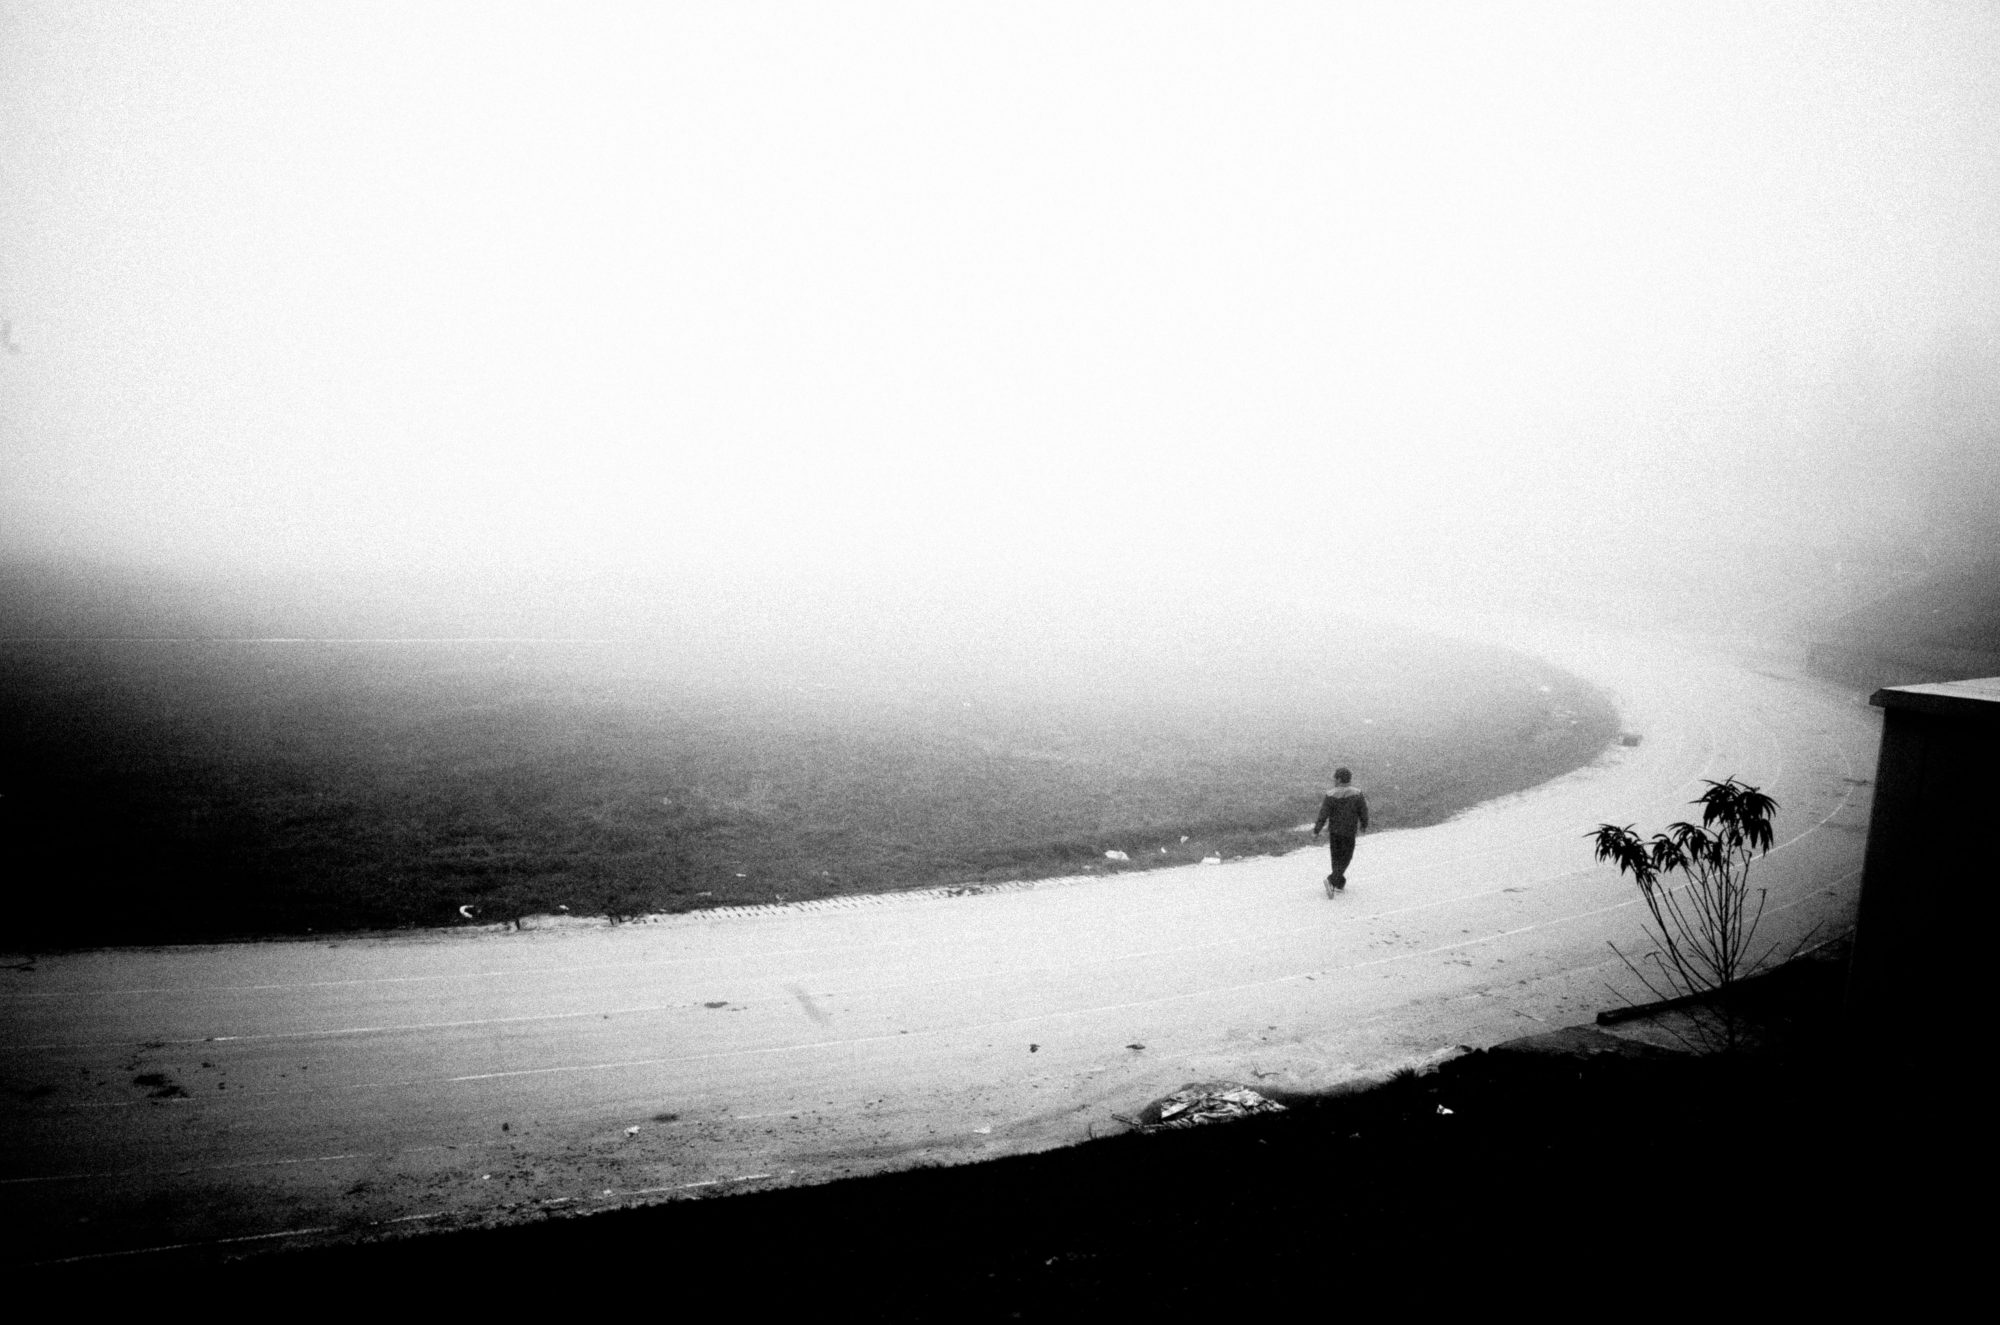 Man walking in mist. Sapa, Vietnam 2016